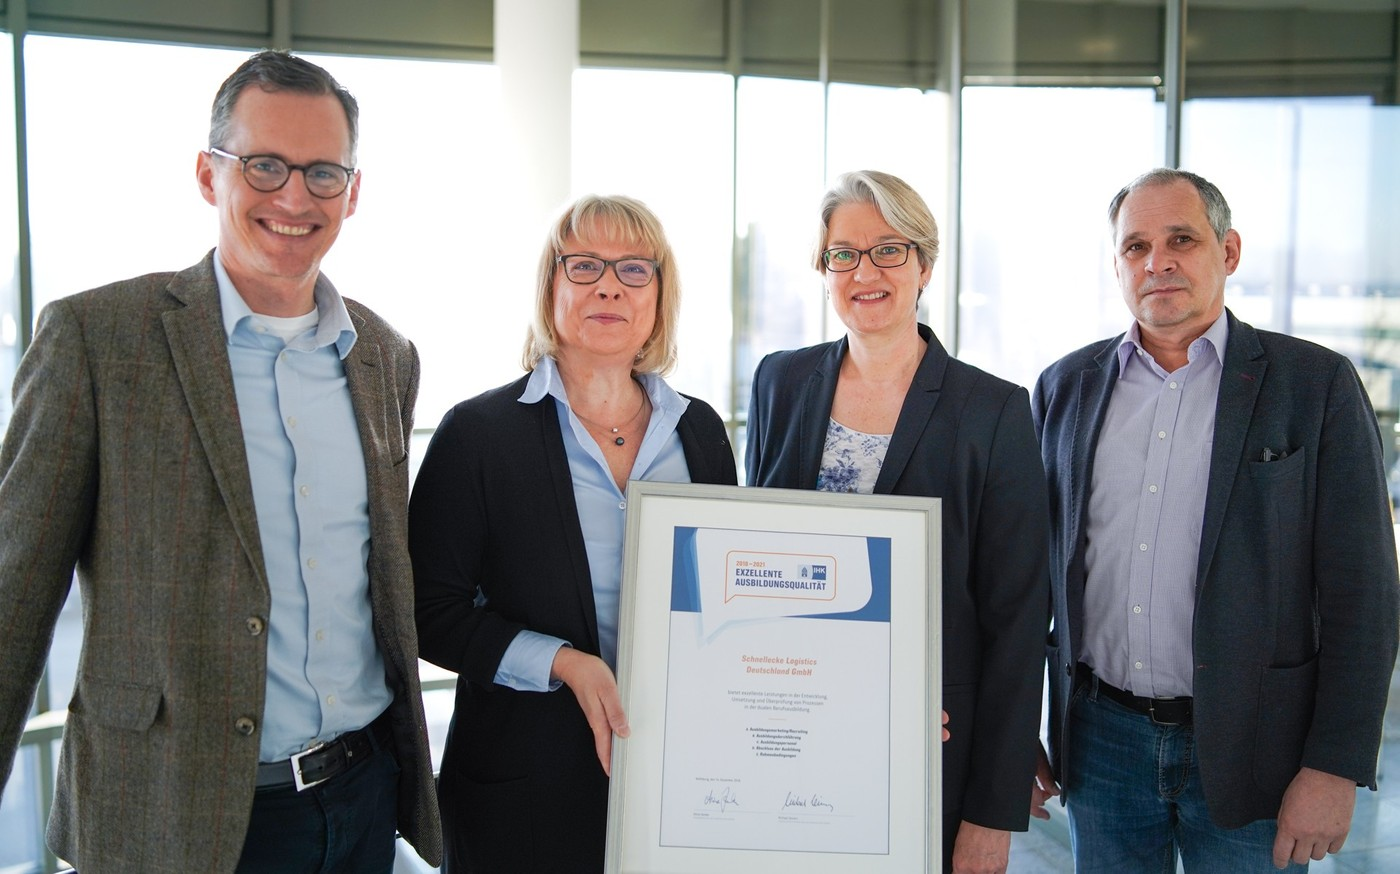 Schnellecke awarded IHK seal for excellent training quality